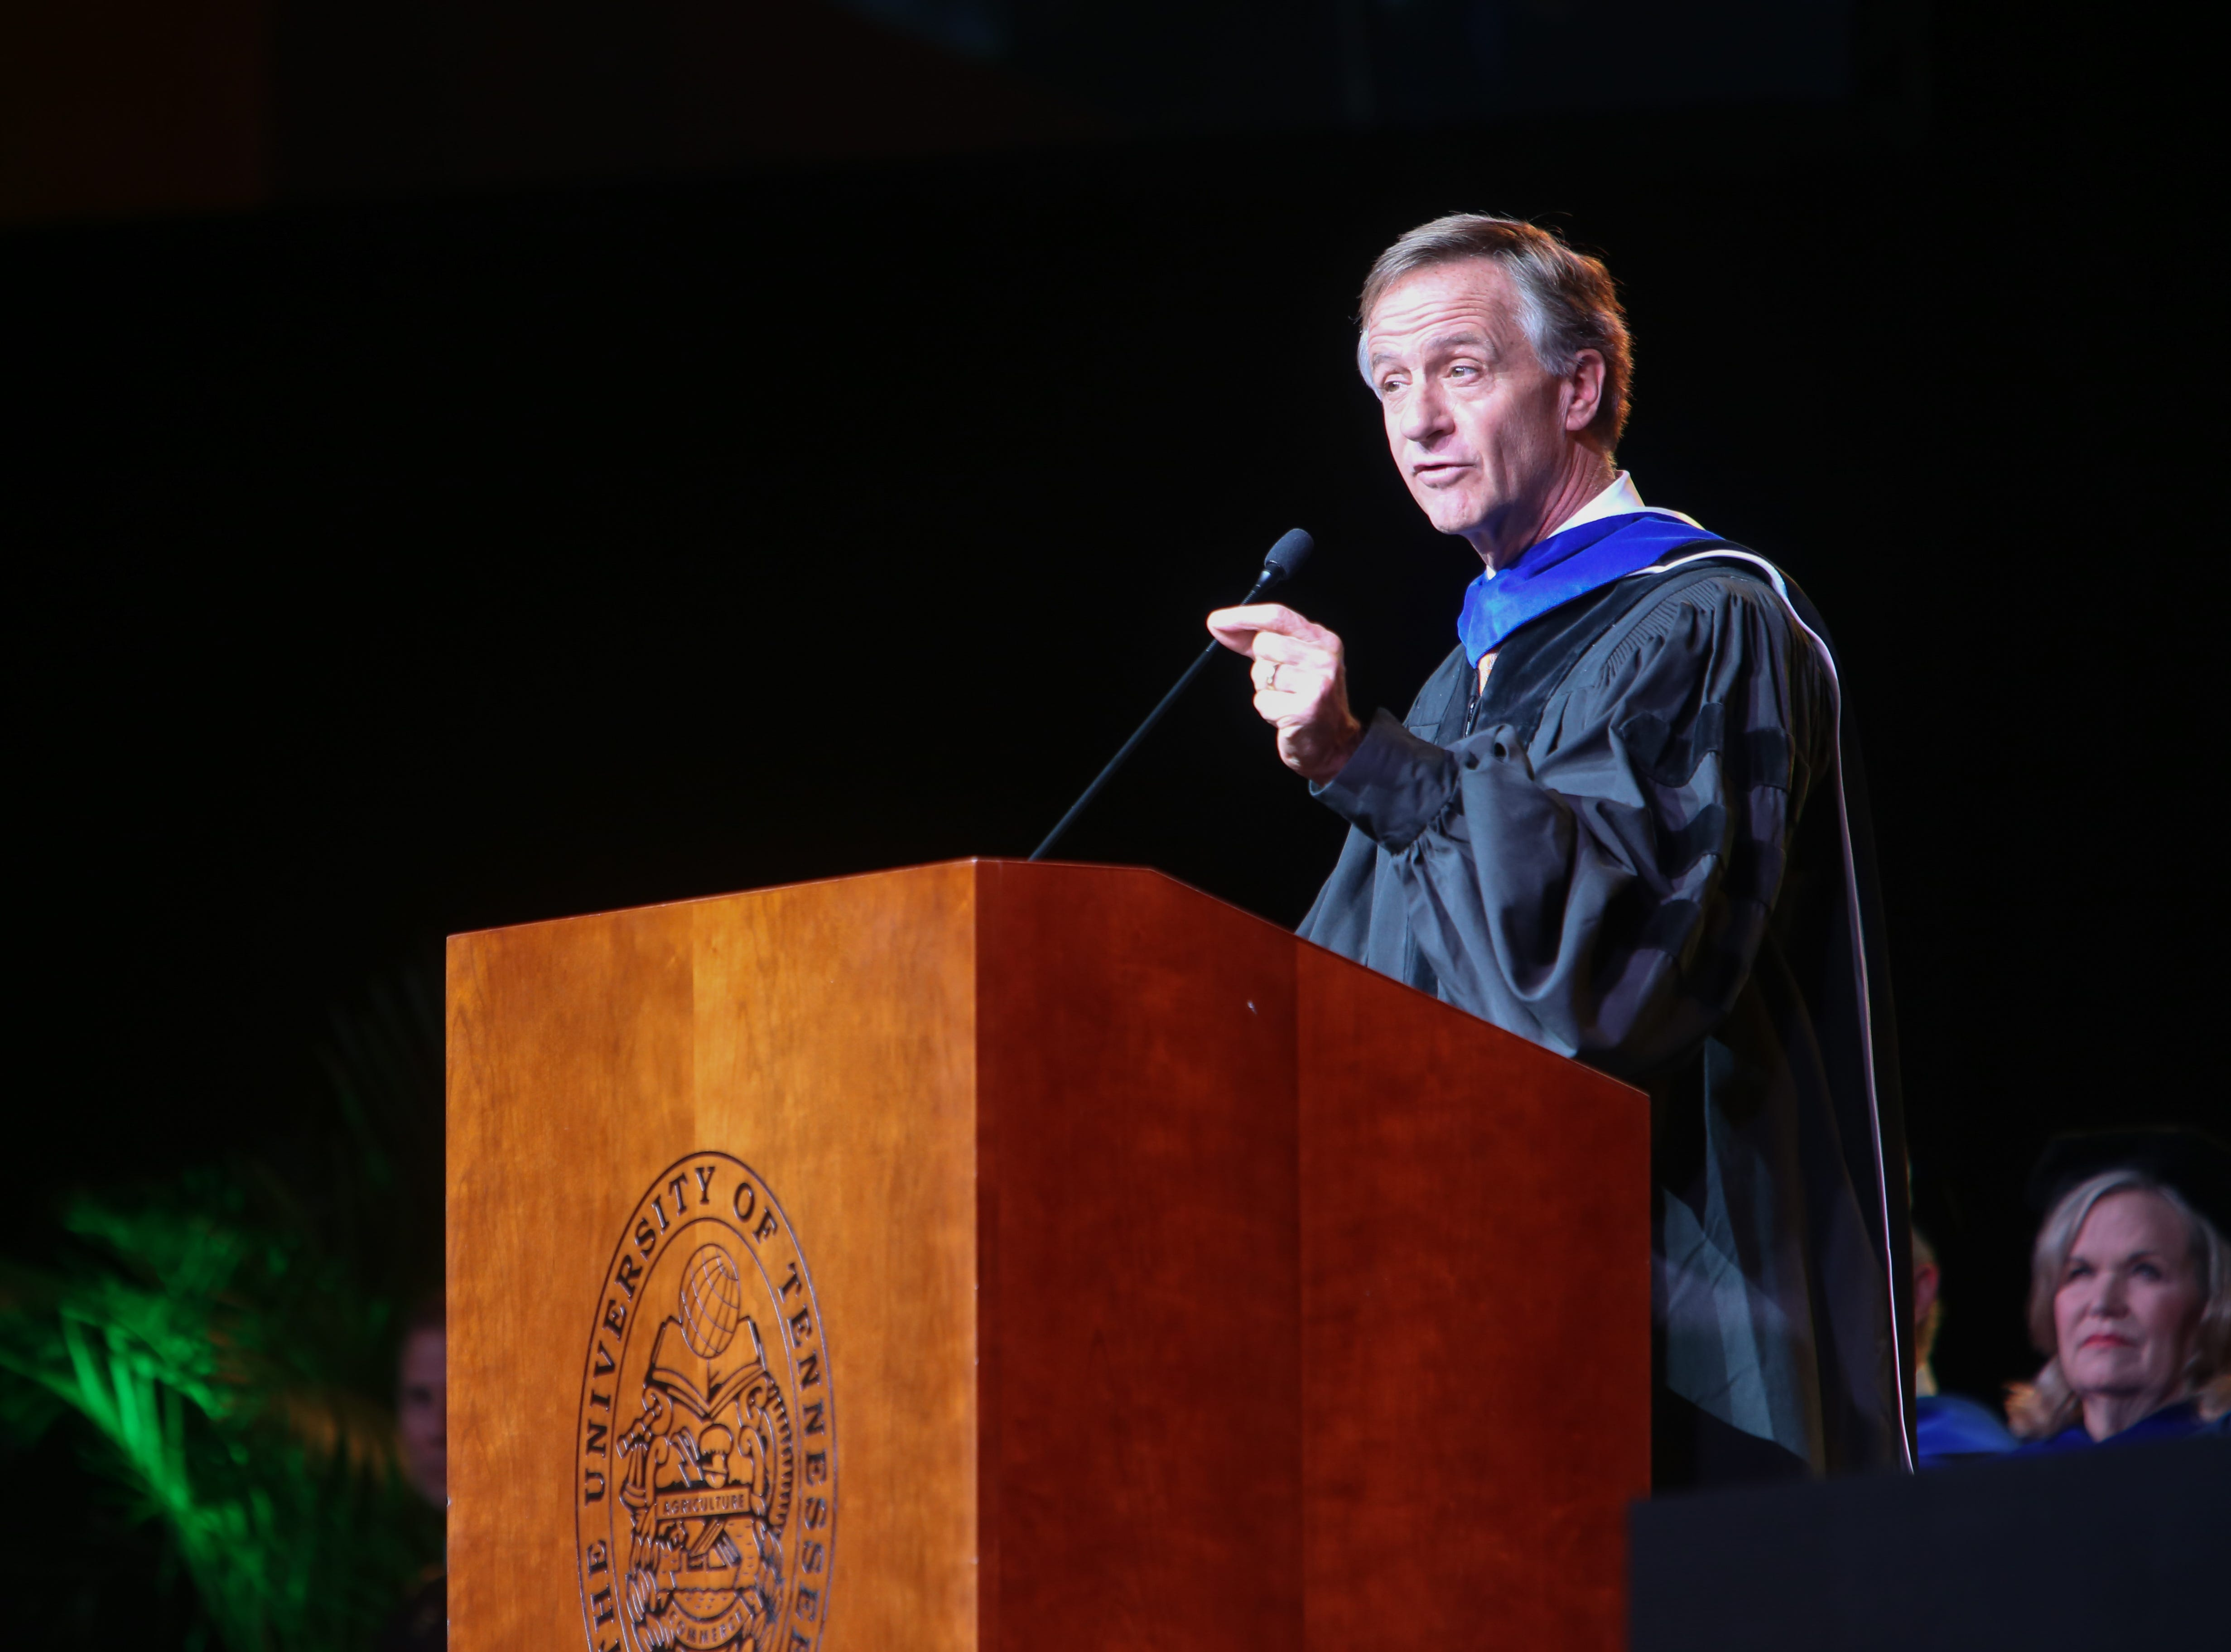 Gov. Bill Haslam speaks to the graduates during the University of Tennessee winter Commencement ceremony at Thompson-Boling Assembly Center and Arena in Knoxville Friday, Dec. 14, 2018.